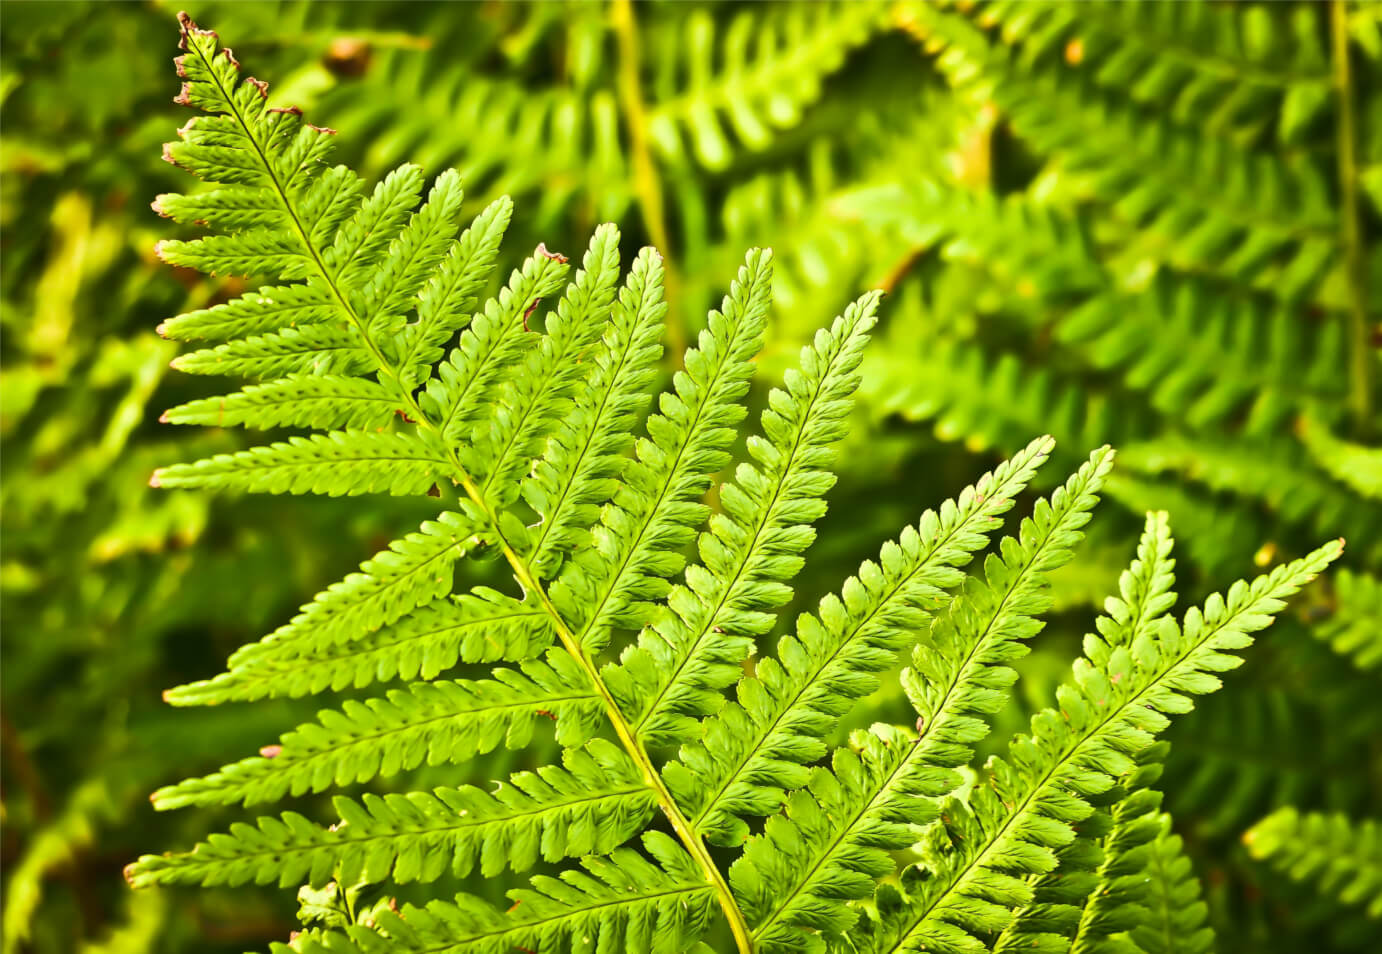 fern-nature-green-plant-1